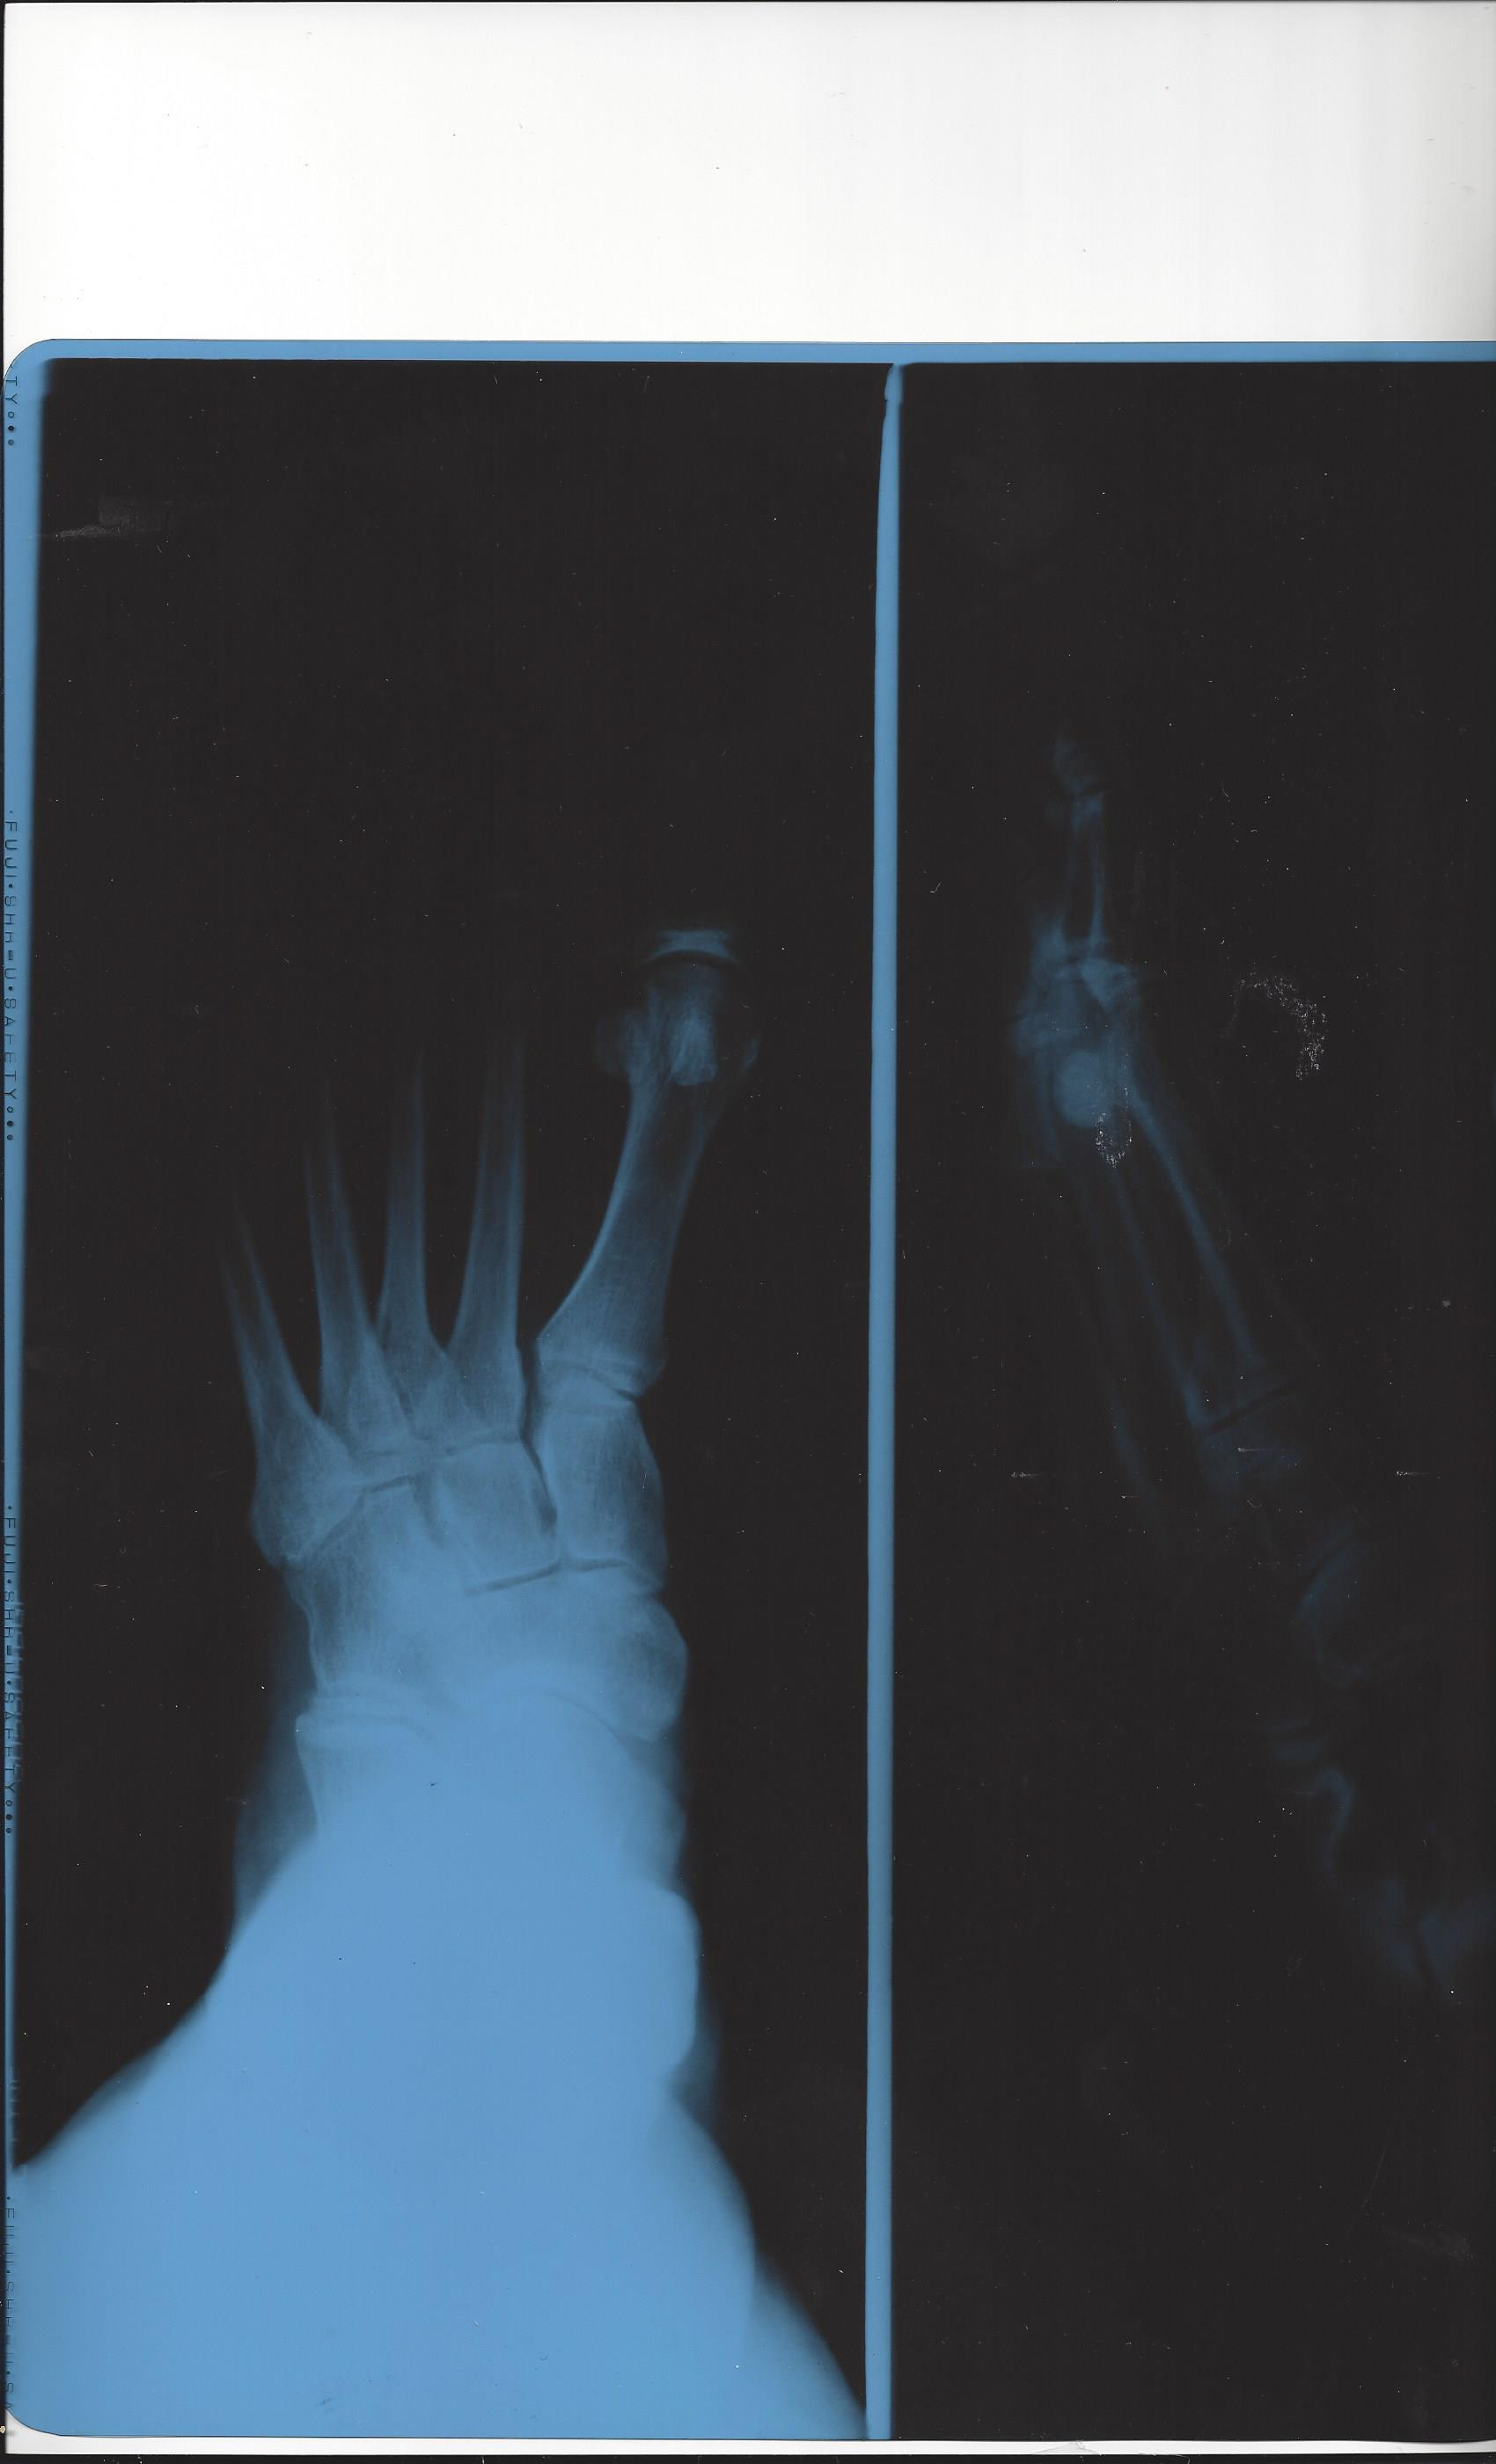 Oblique fracture of right foot on x-ray